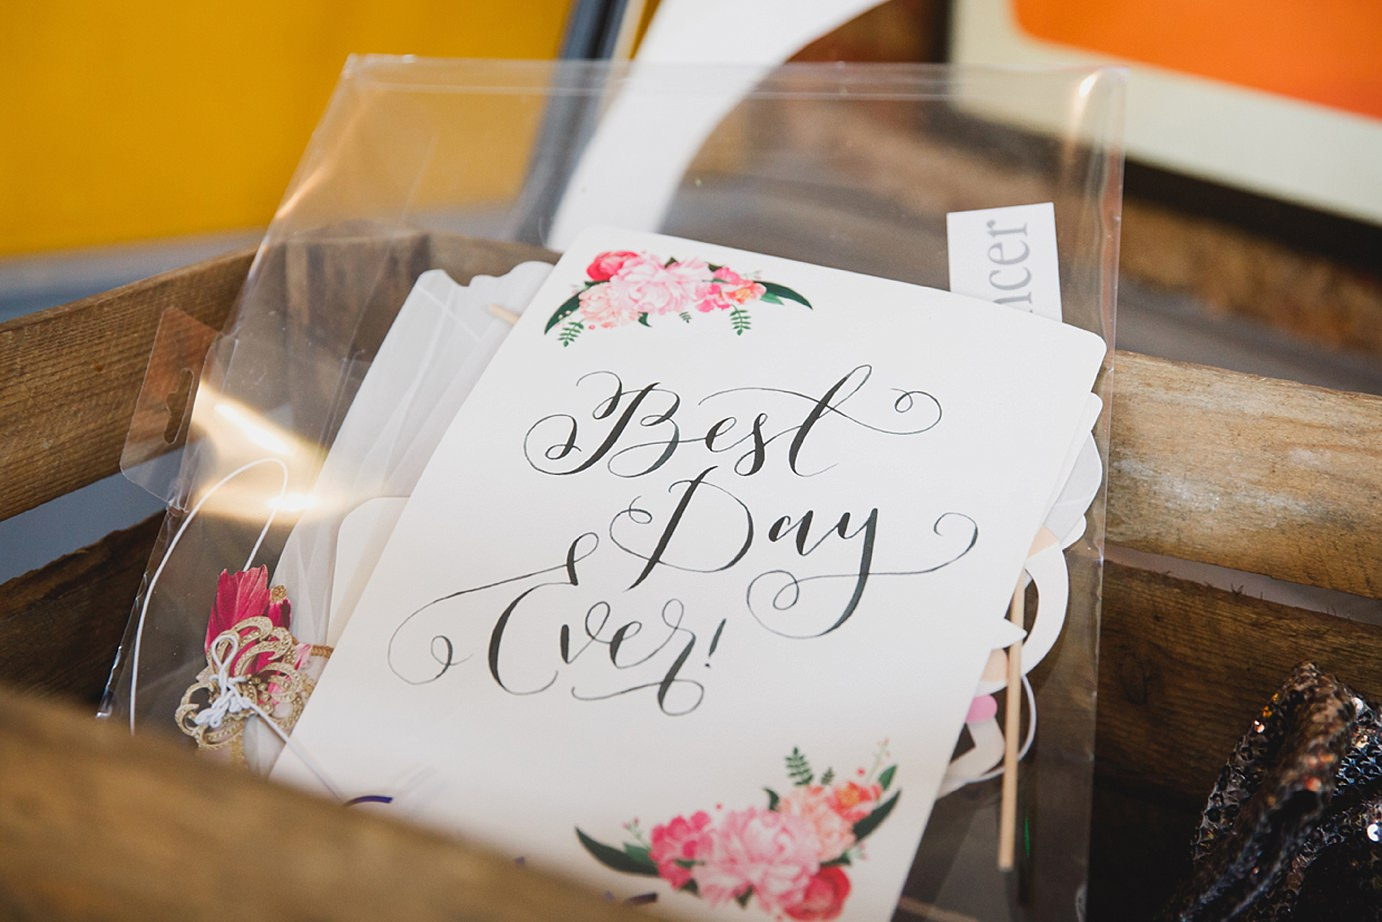 Londesborough pub wedding photography best day ever card